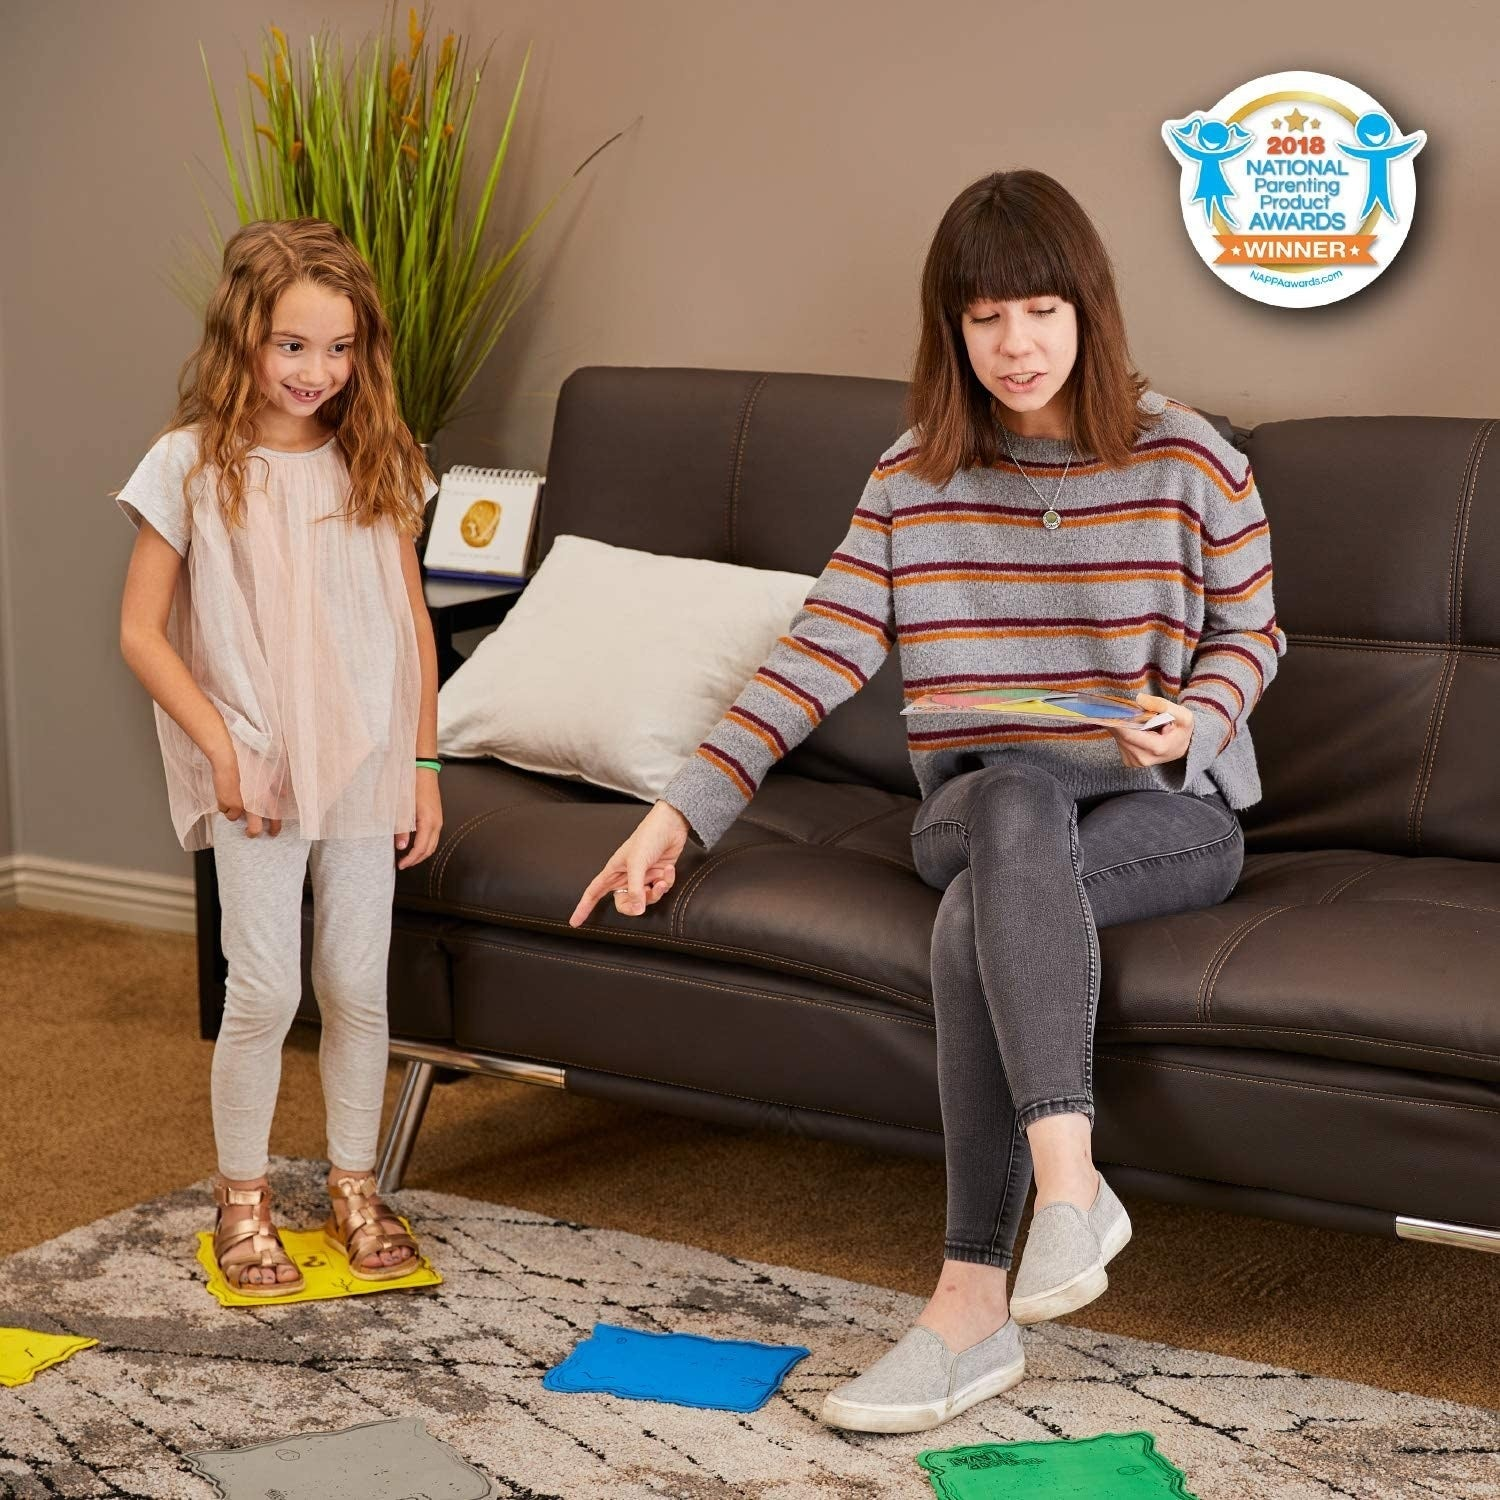 A parent and child playing The Floor is Lava game